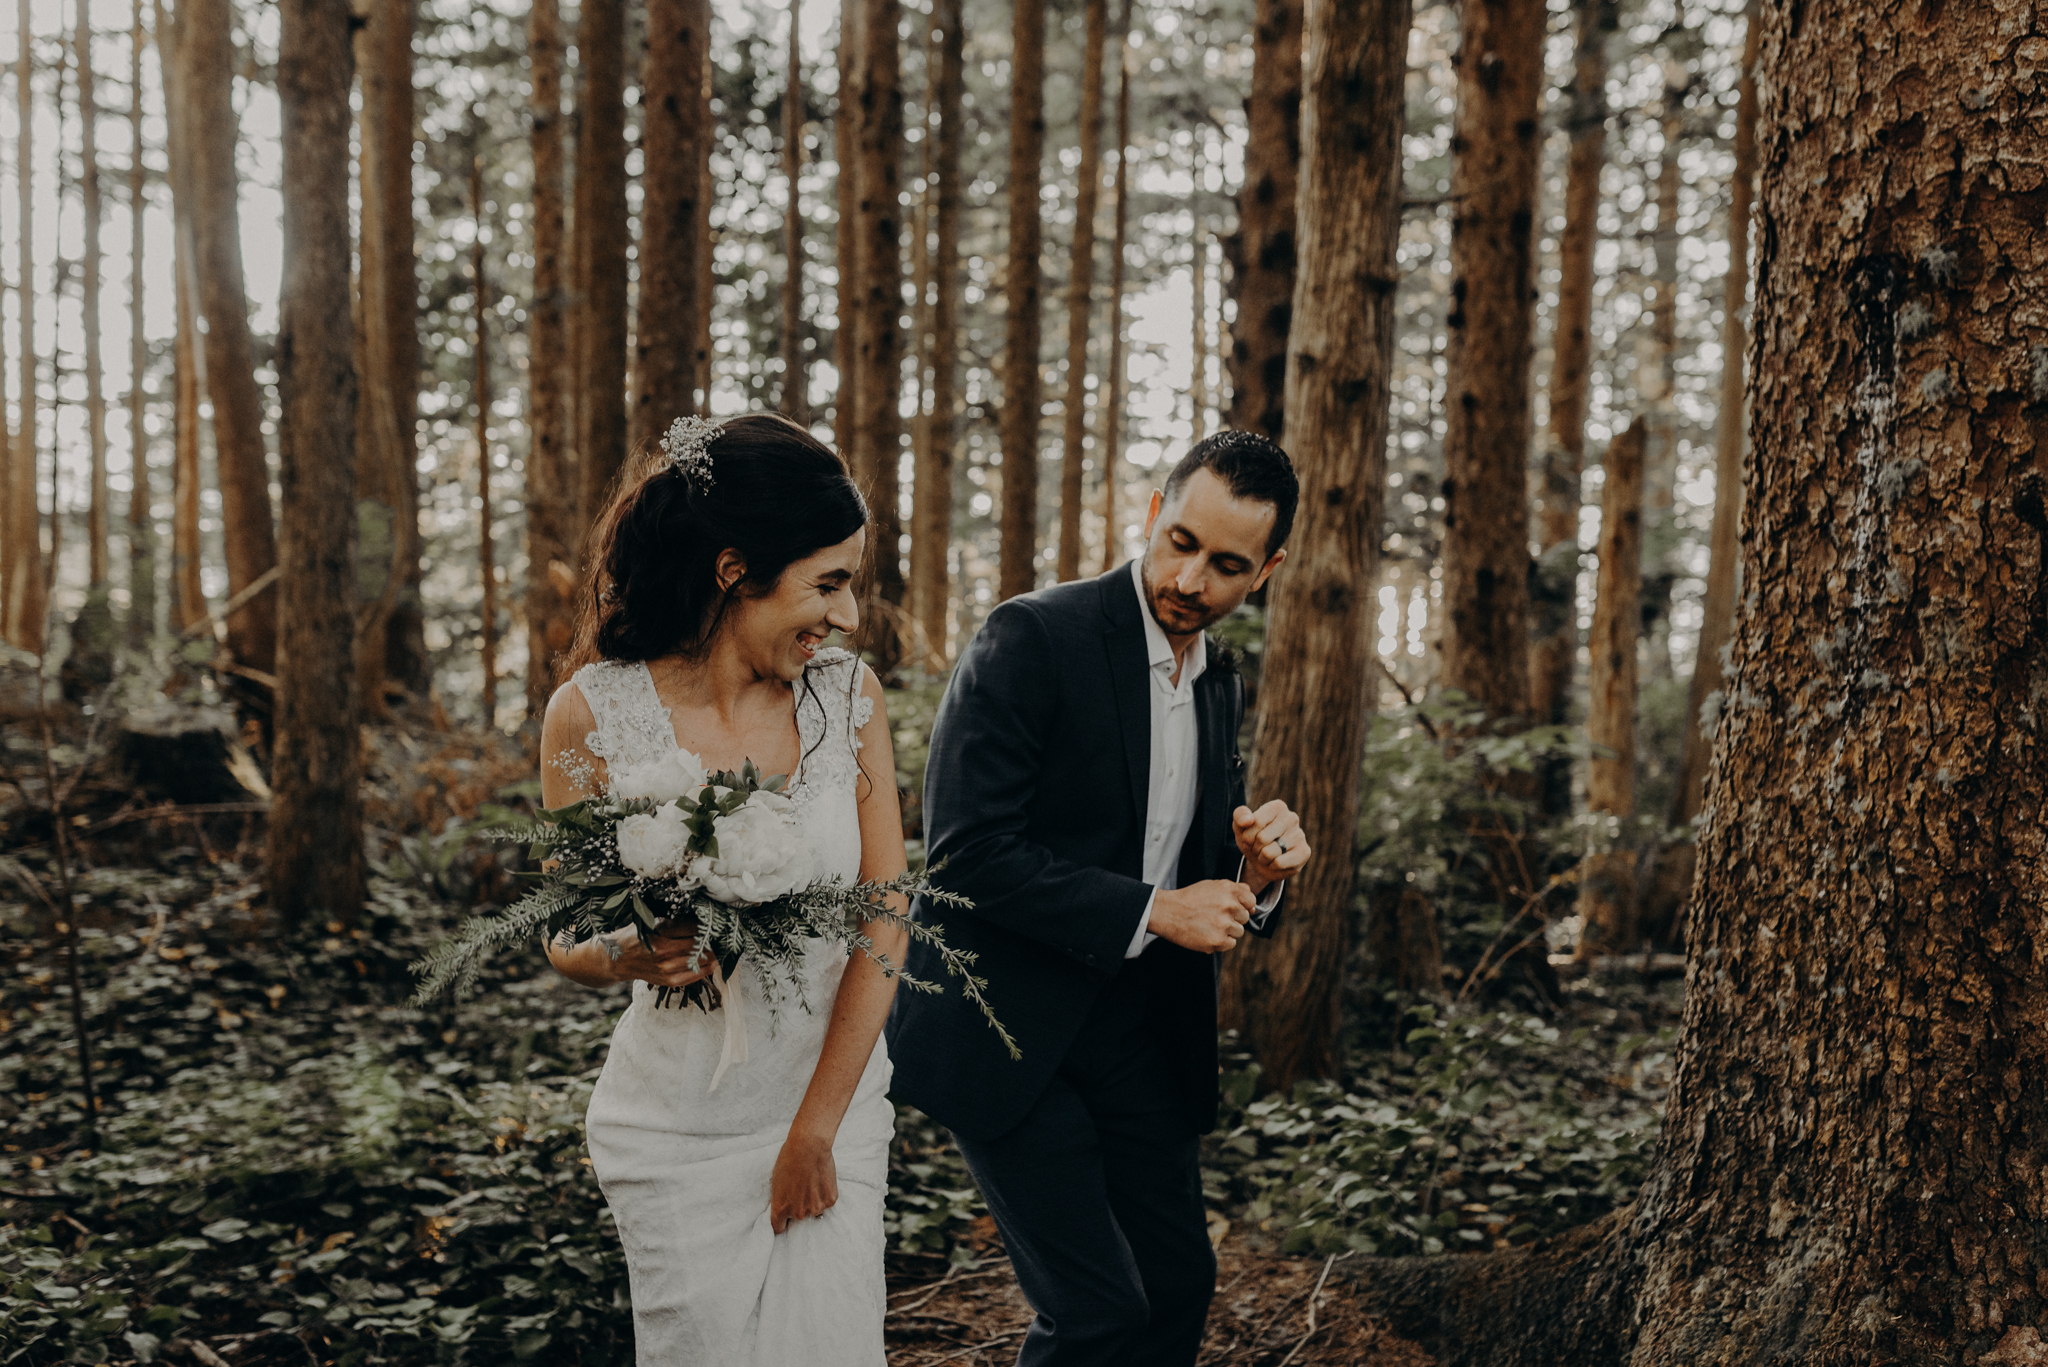 Isaiah + Taylor Photography - Cape Flattery Elopement, Olympia National Forest Wedding Photographer-099.jpg